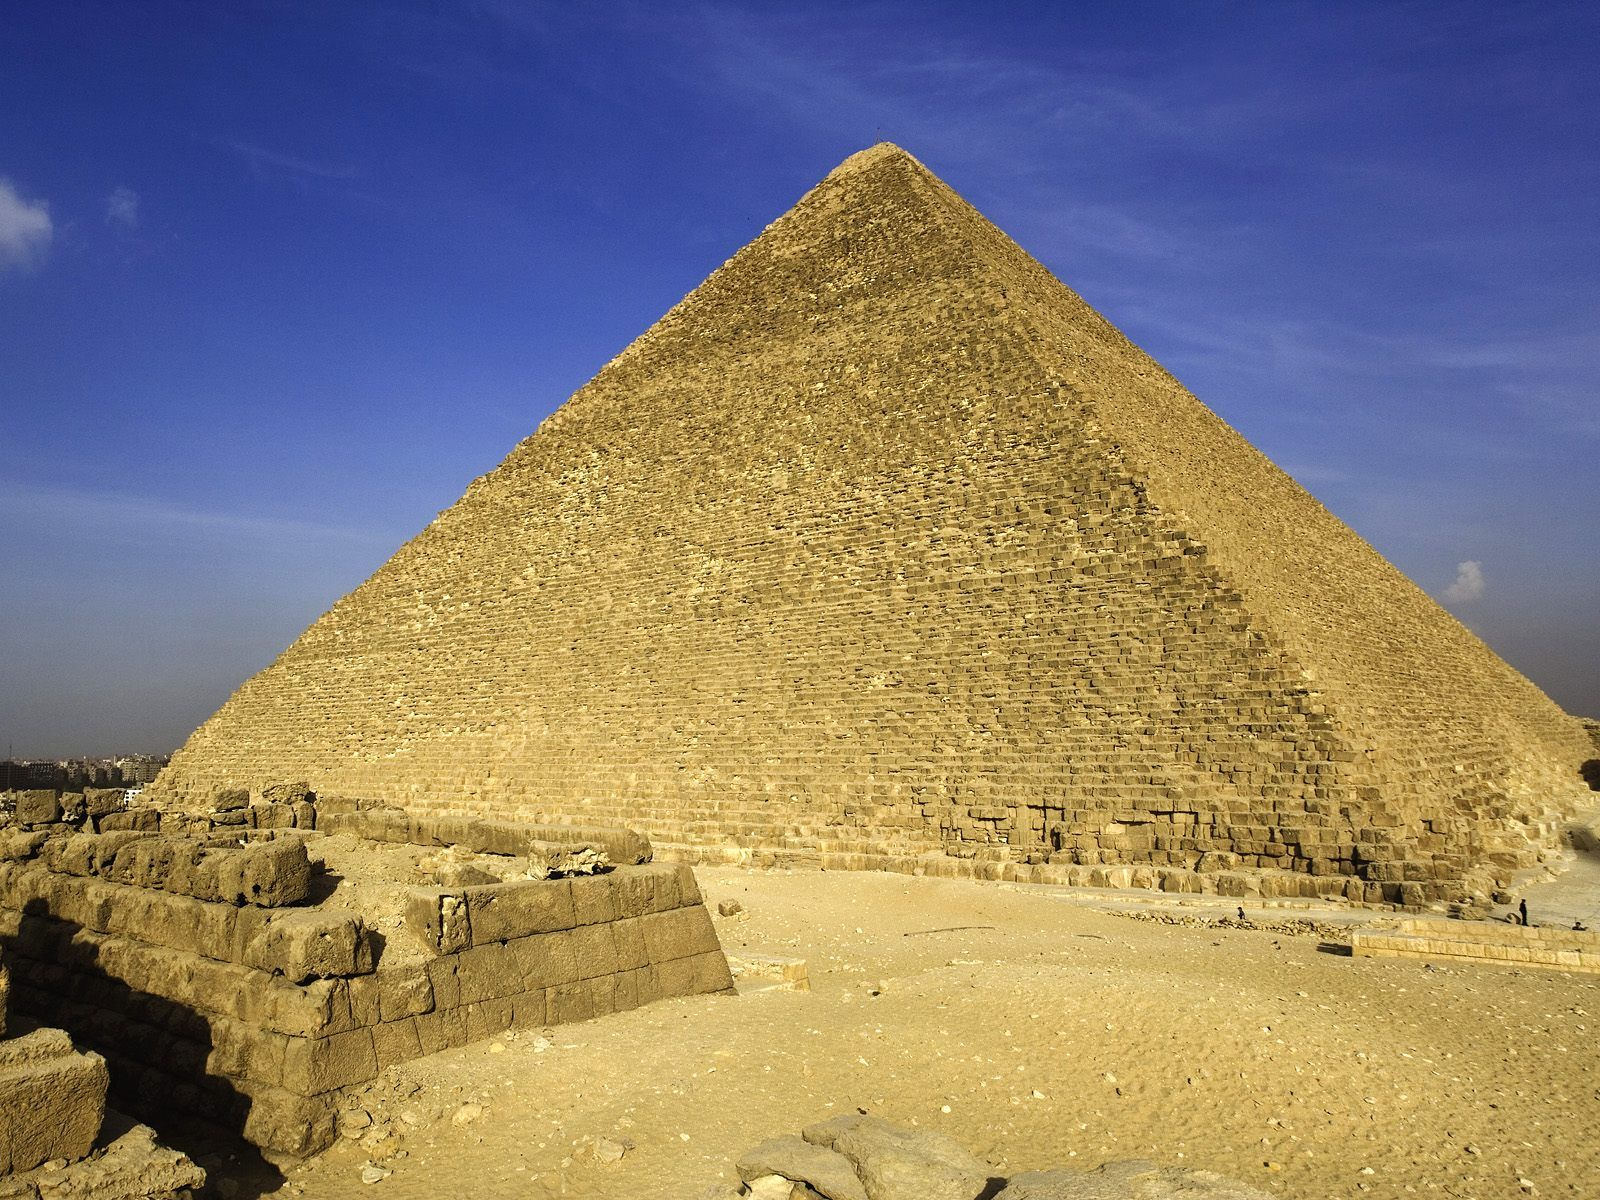 The great pyramid of giza is the pyramid with measurements closest